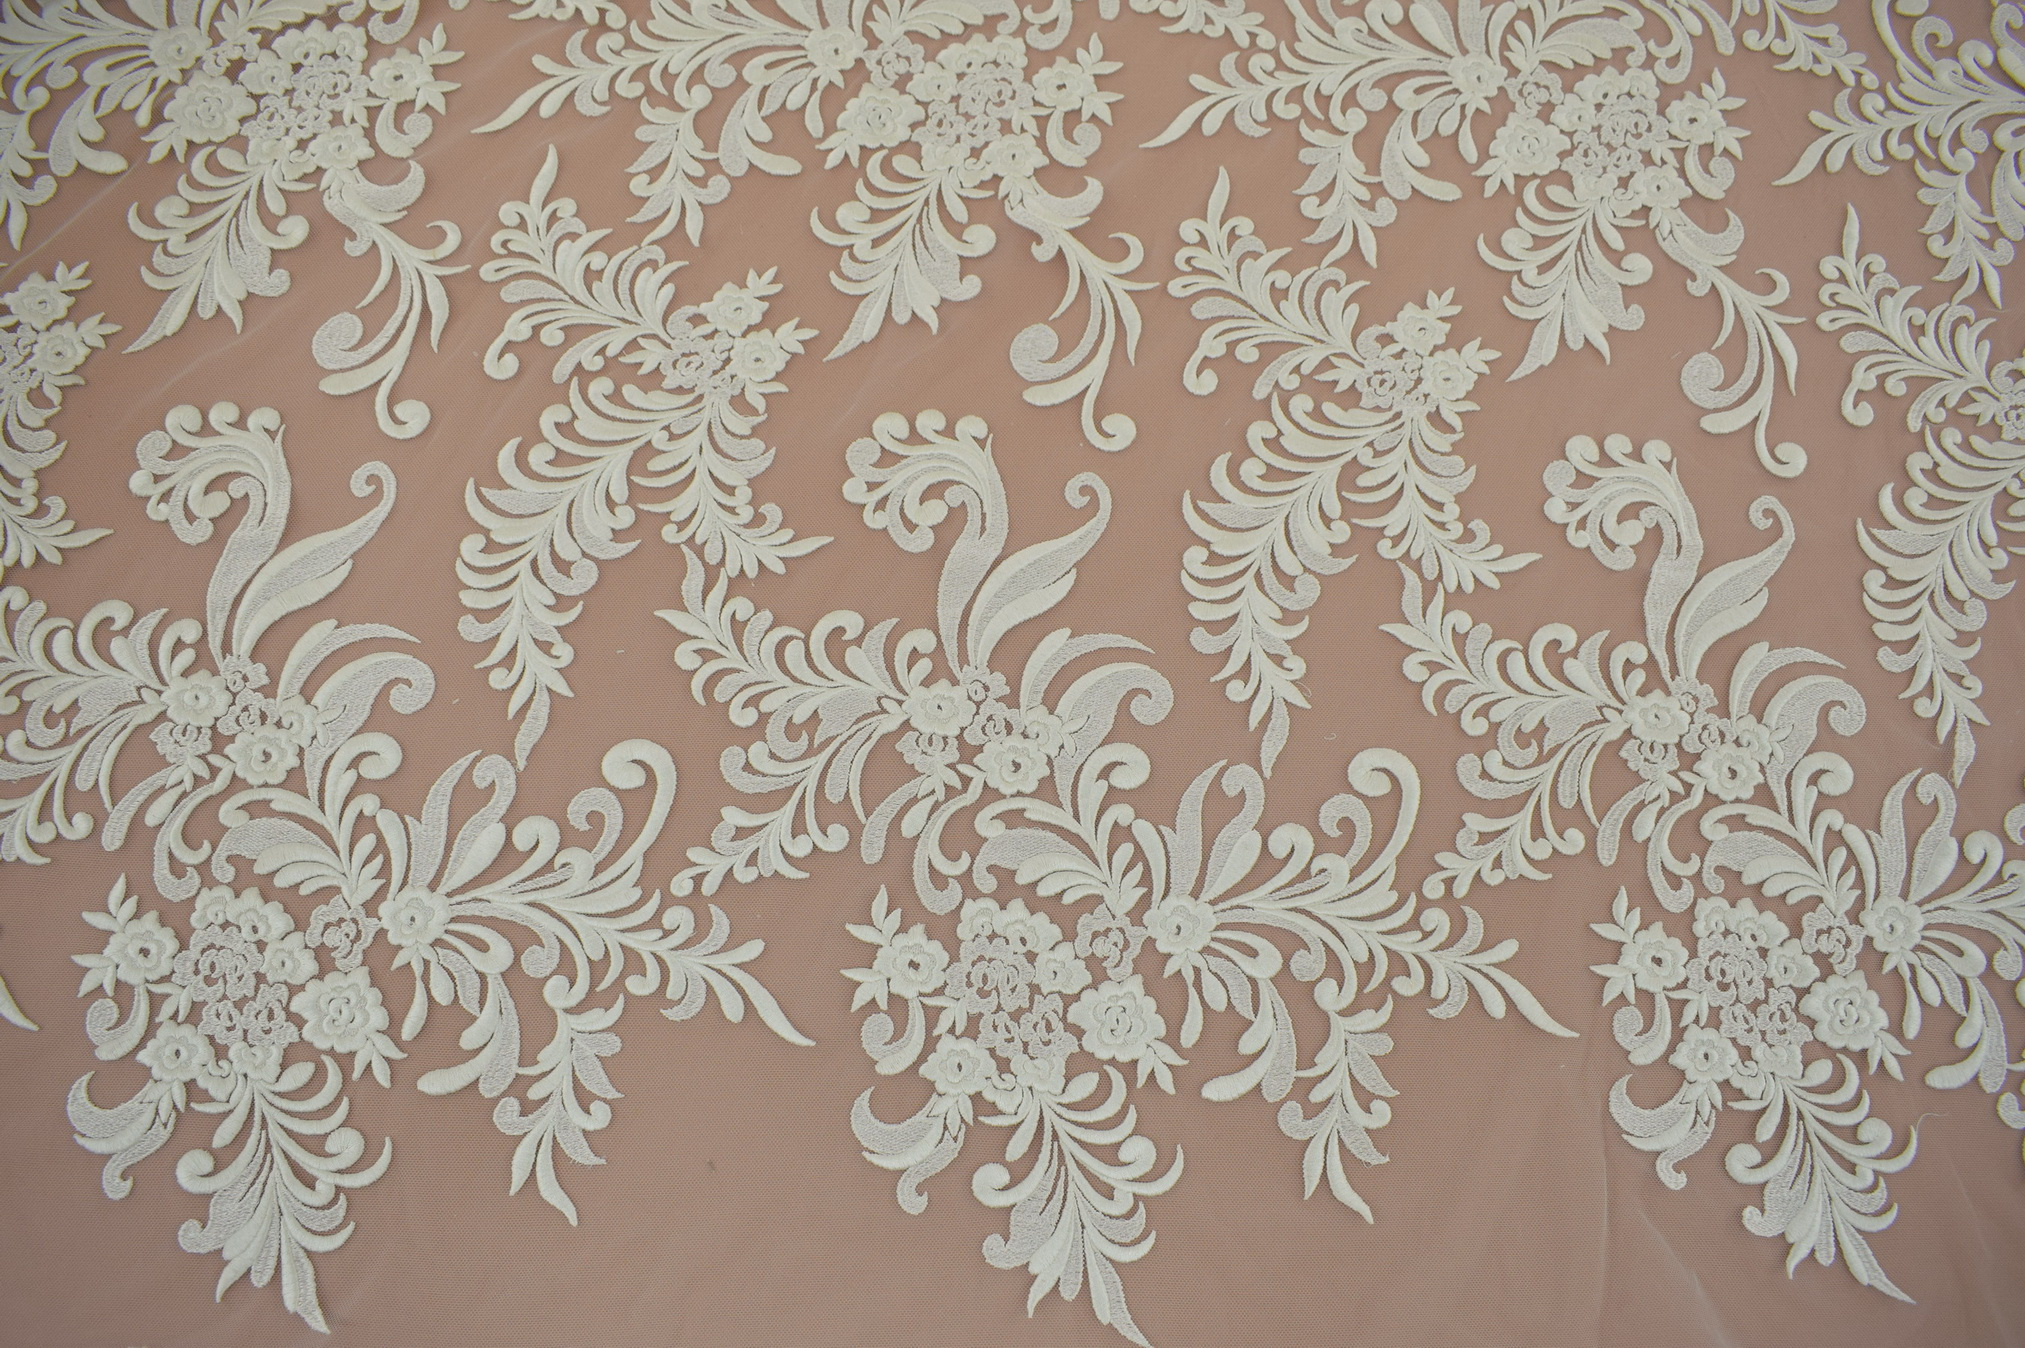 Guipure: Not embroidered «1703-TW-2 (L1512-1S)»